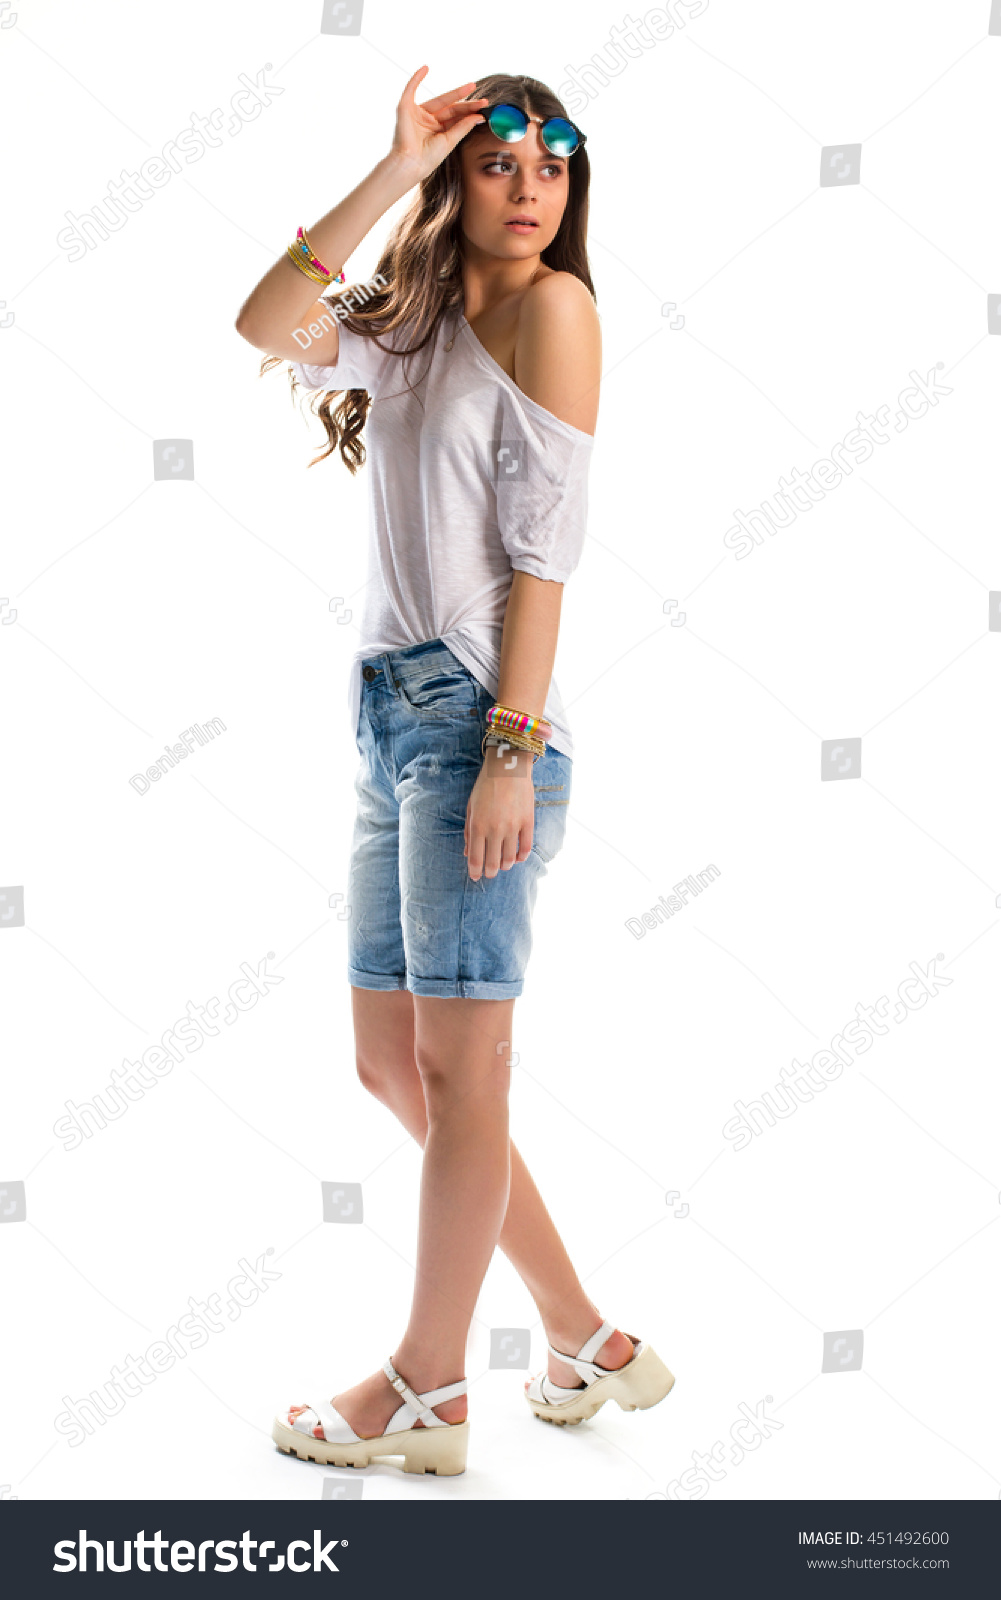 Young Woman White Tunic Wedge Sandals Stock Photo Edit Now Torch Tunik Women Blue Black Navy L In And Shorts Summer Outfit Accessories